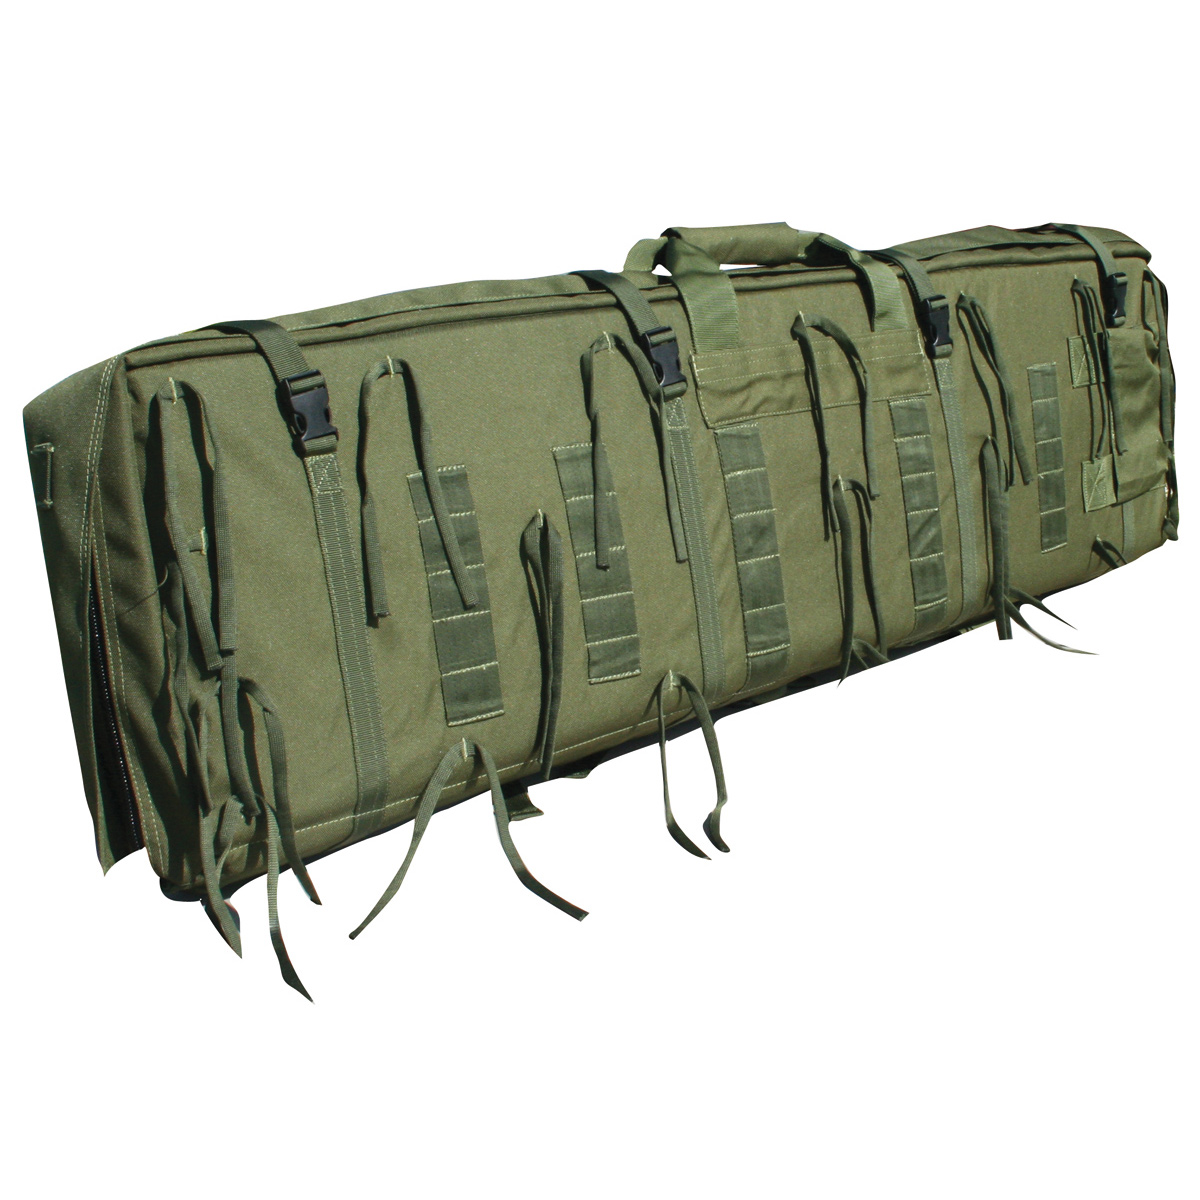 wiskurtactical deluxe shooters mat and carry